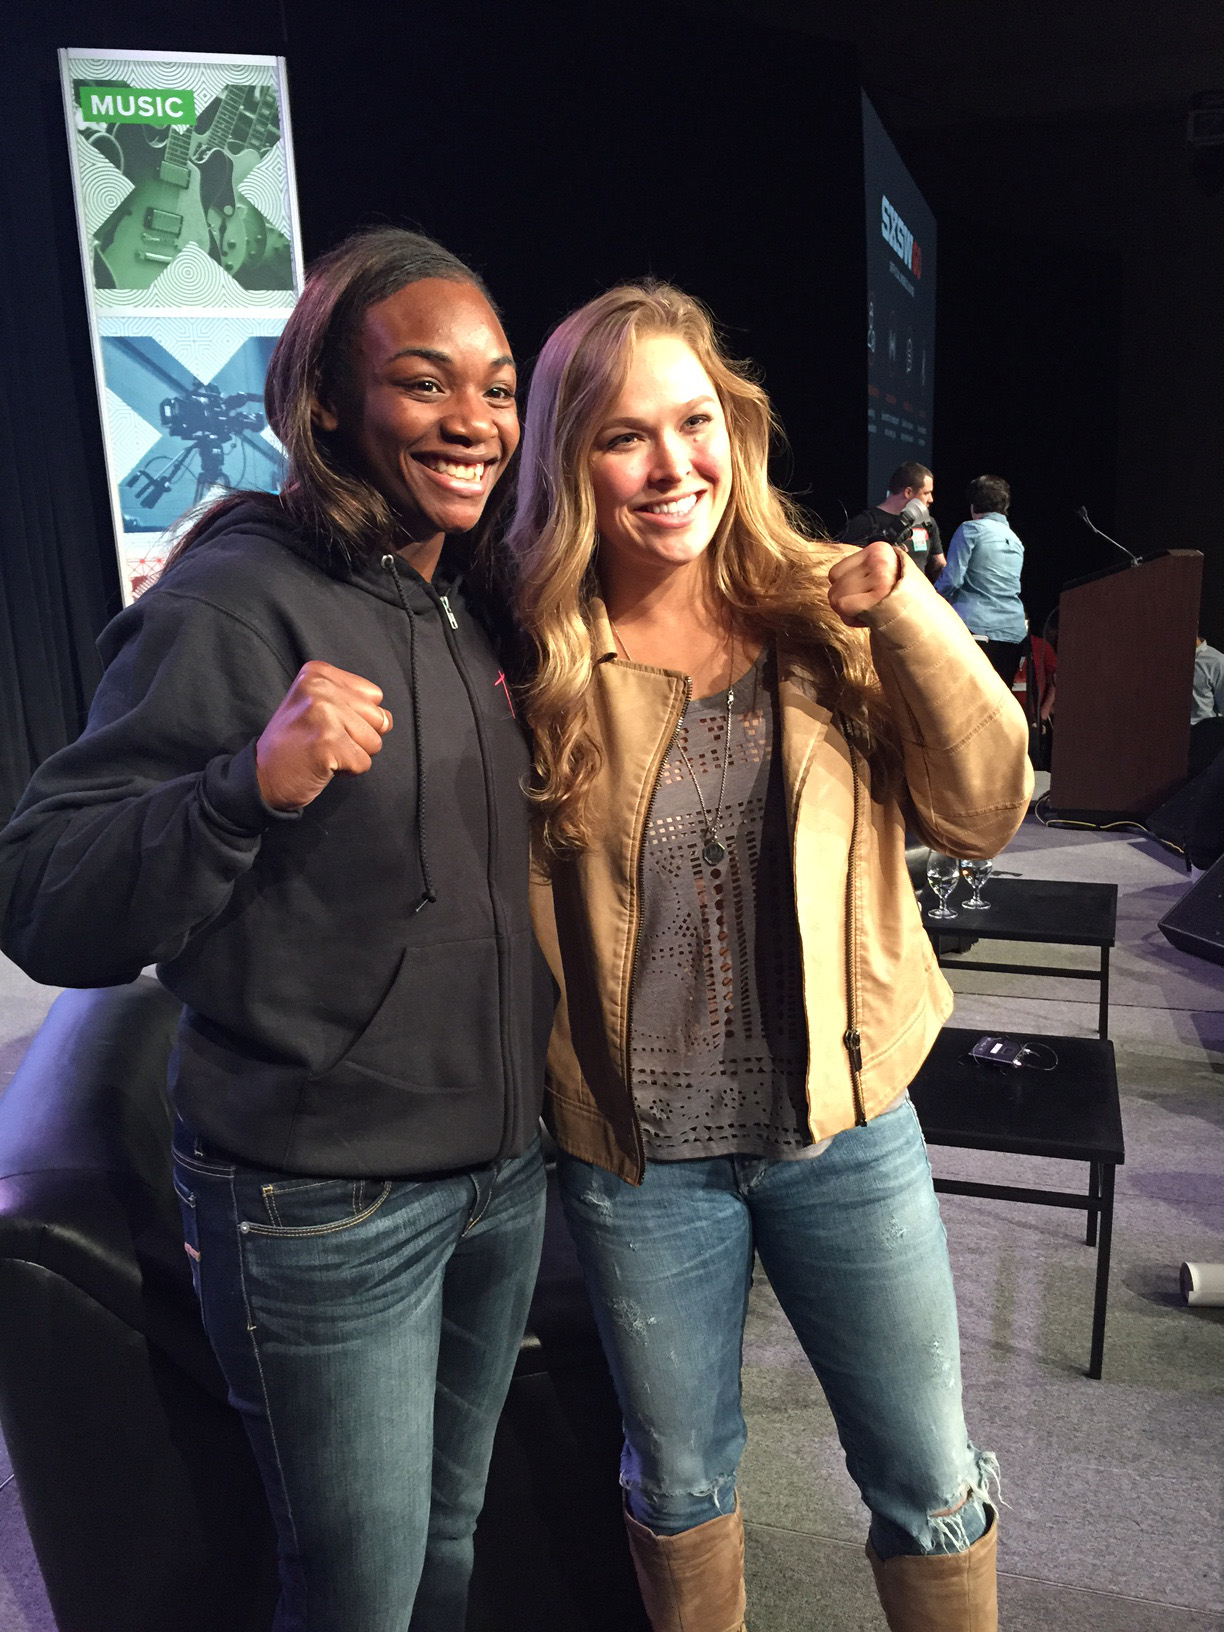 Olympic gold medalist Claressa Shields (L) and Ronda Rousey